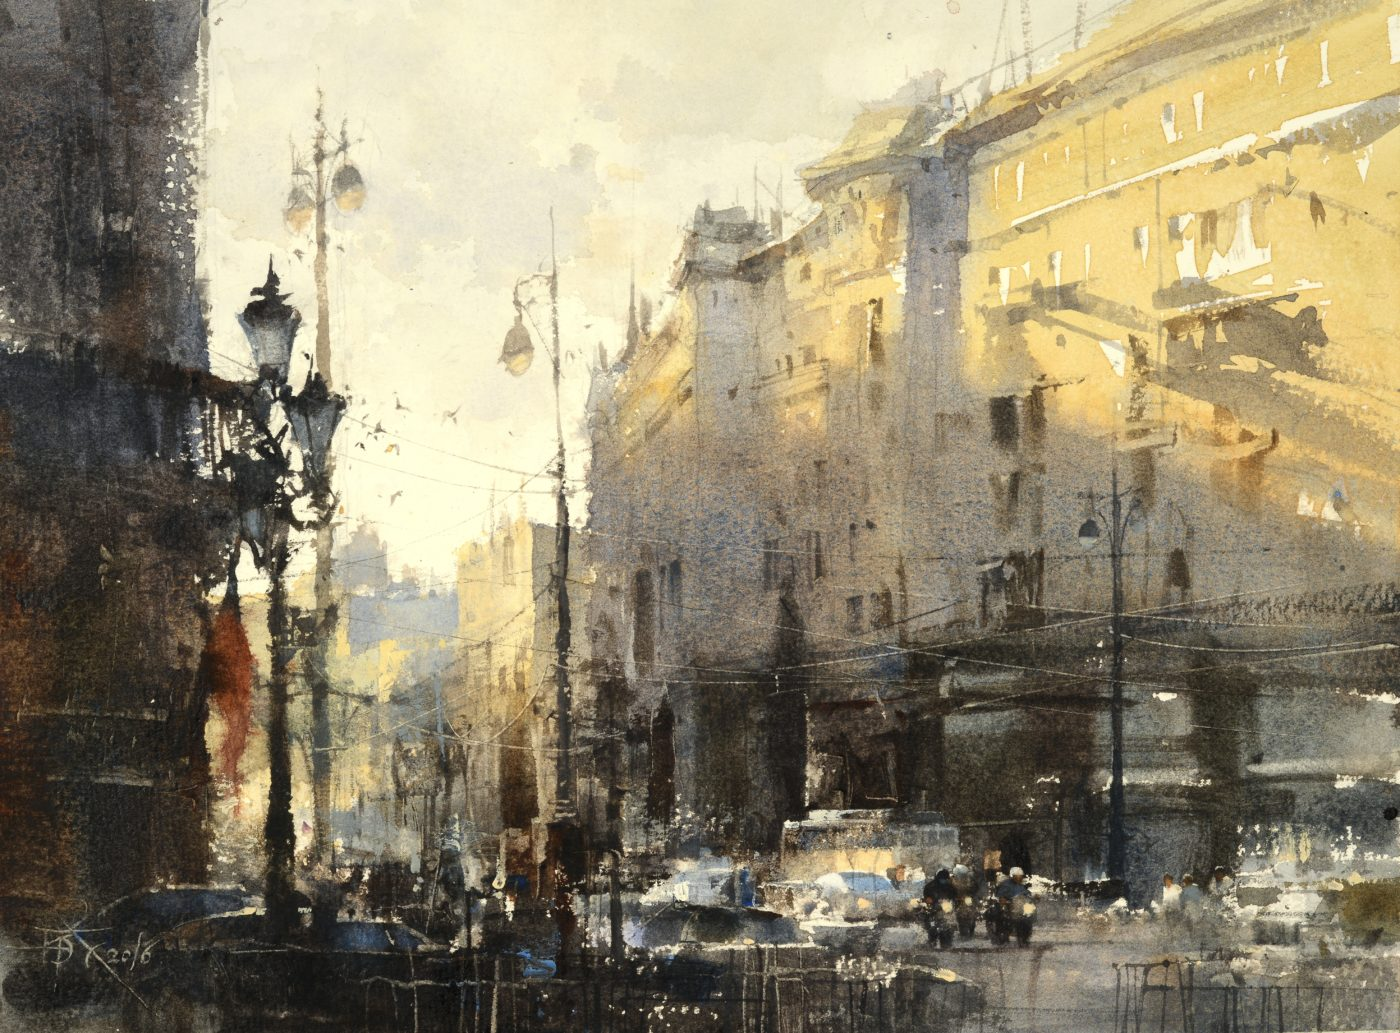 The Last Sunshine Is Still Warm Today by Chien Chung Wei, watercolor painting